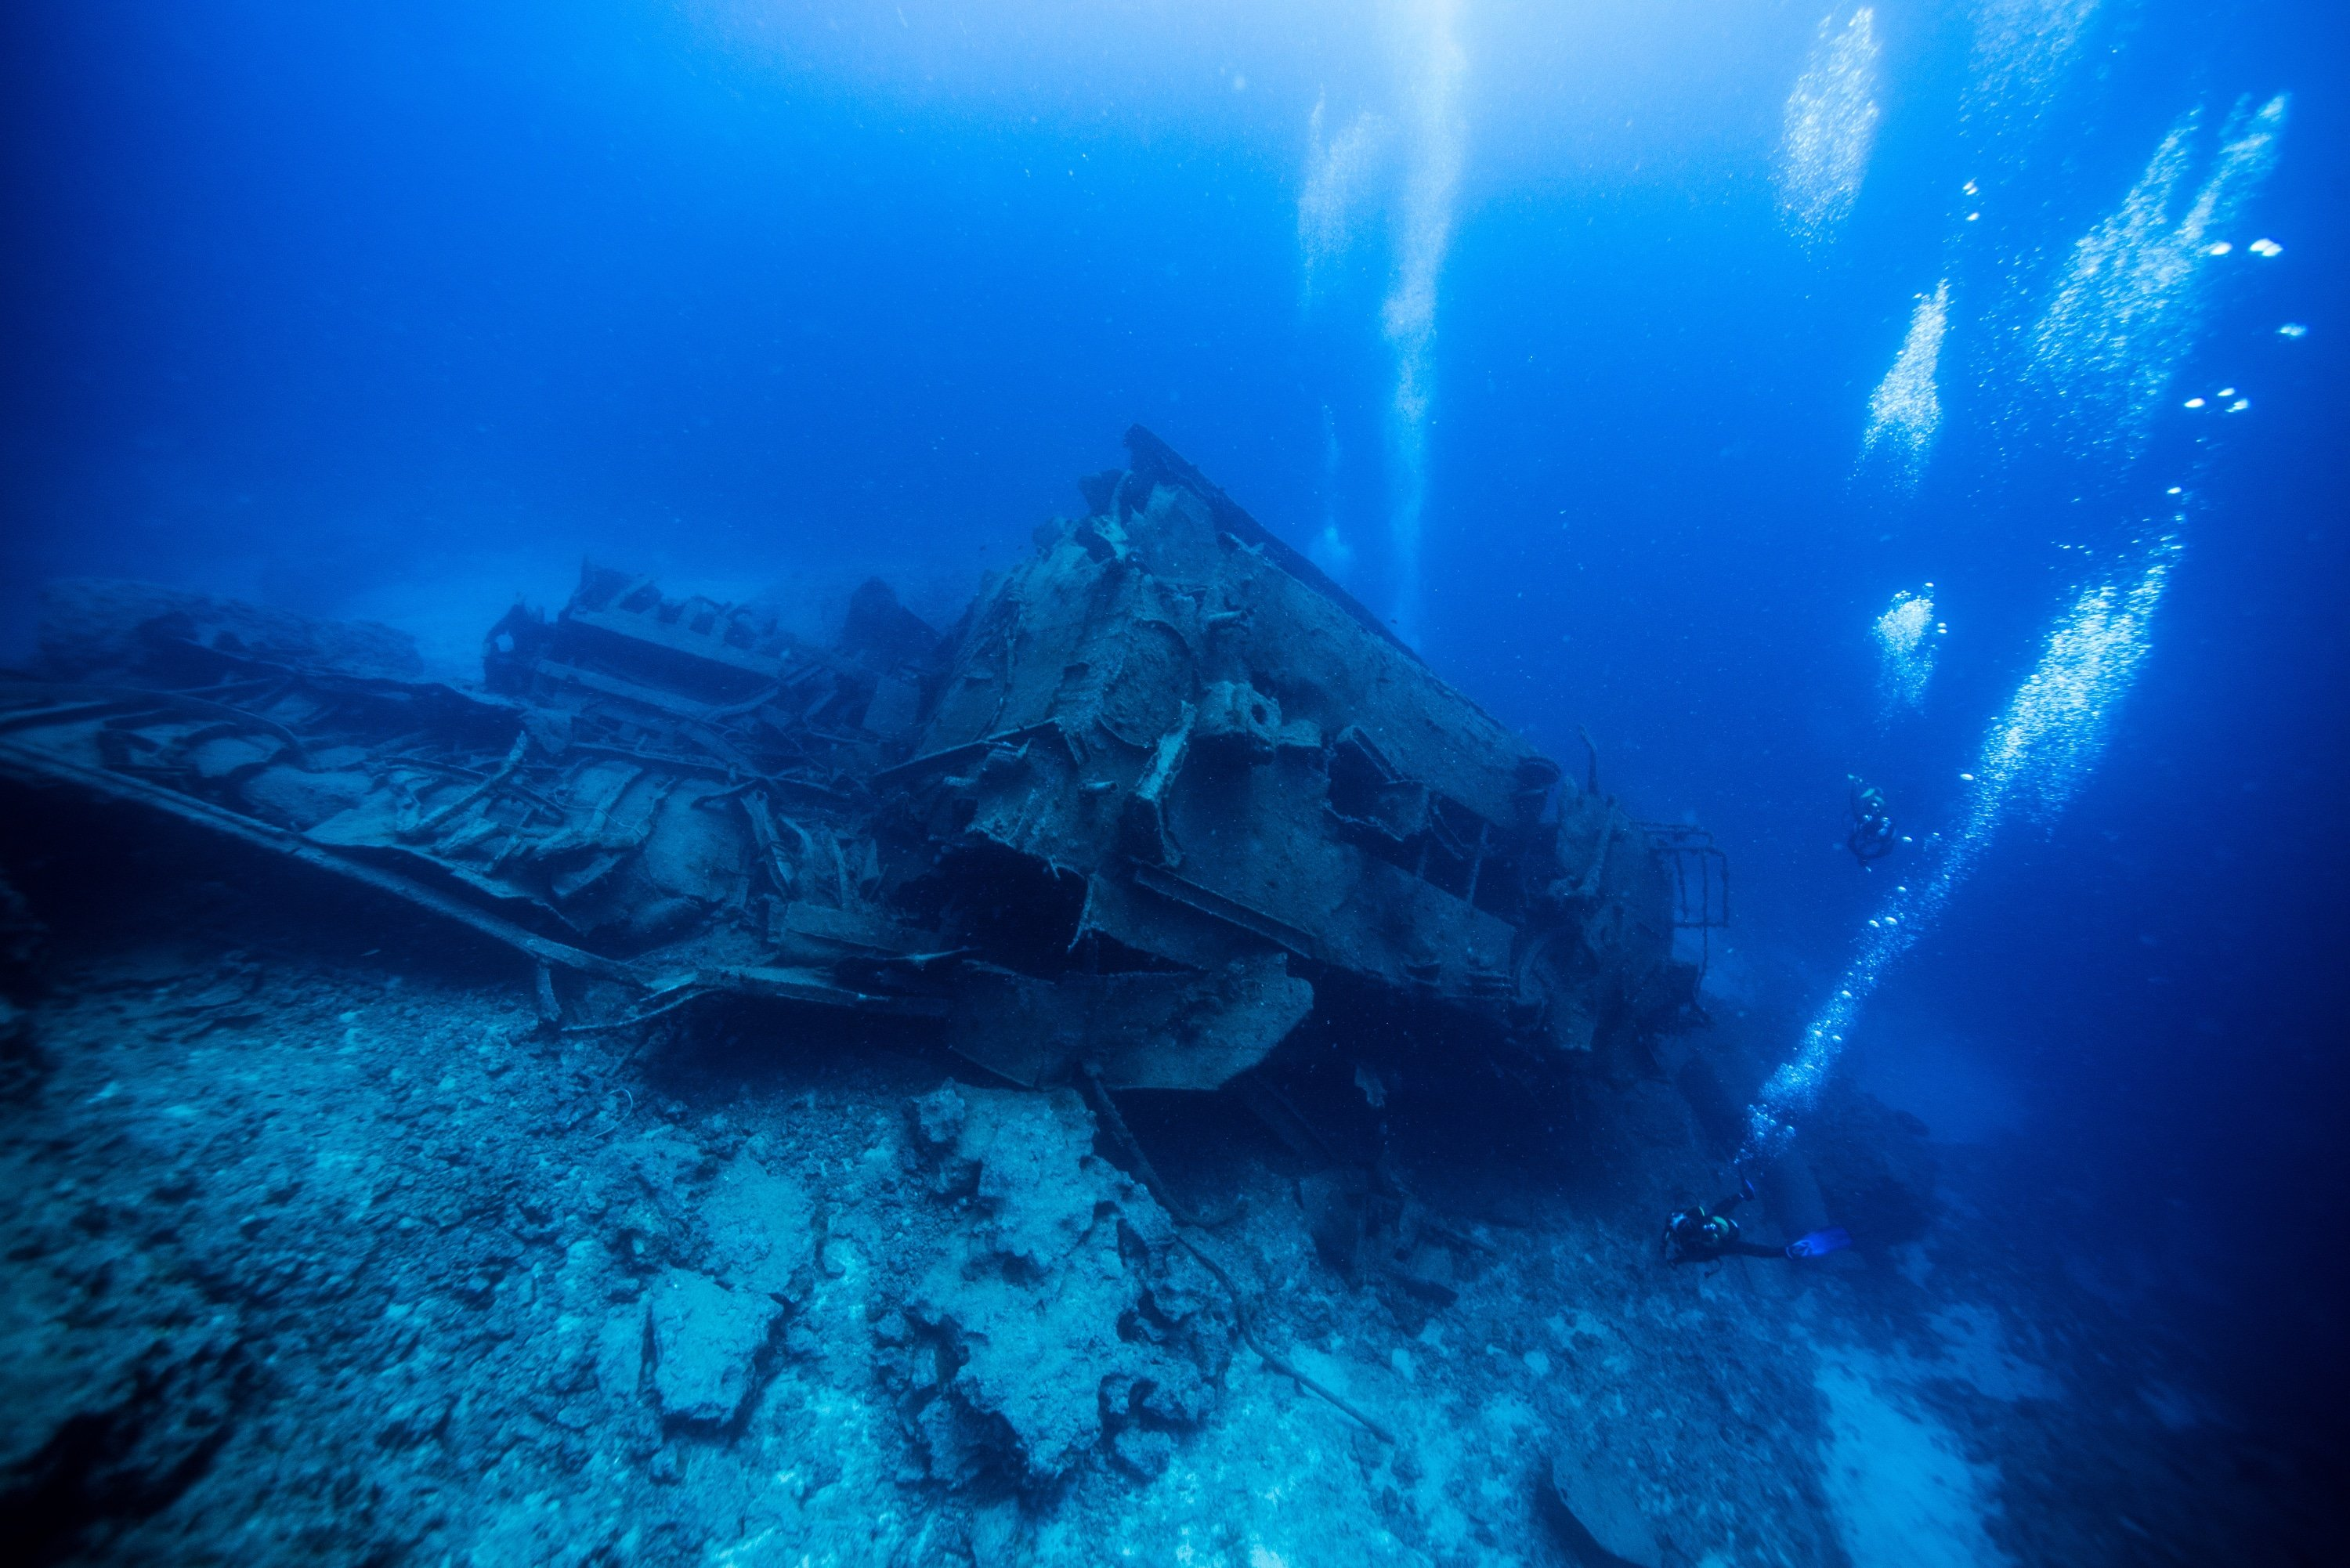 Scuba Divers on a Wreck